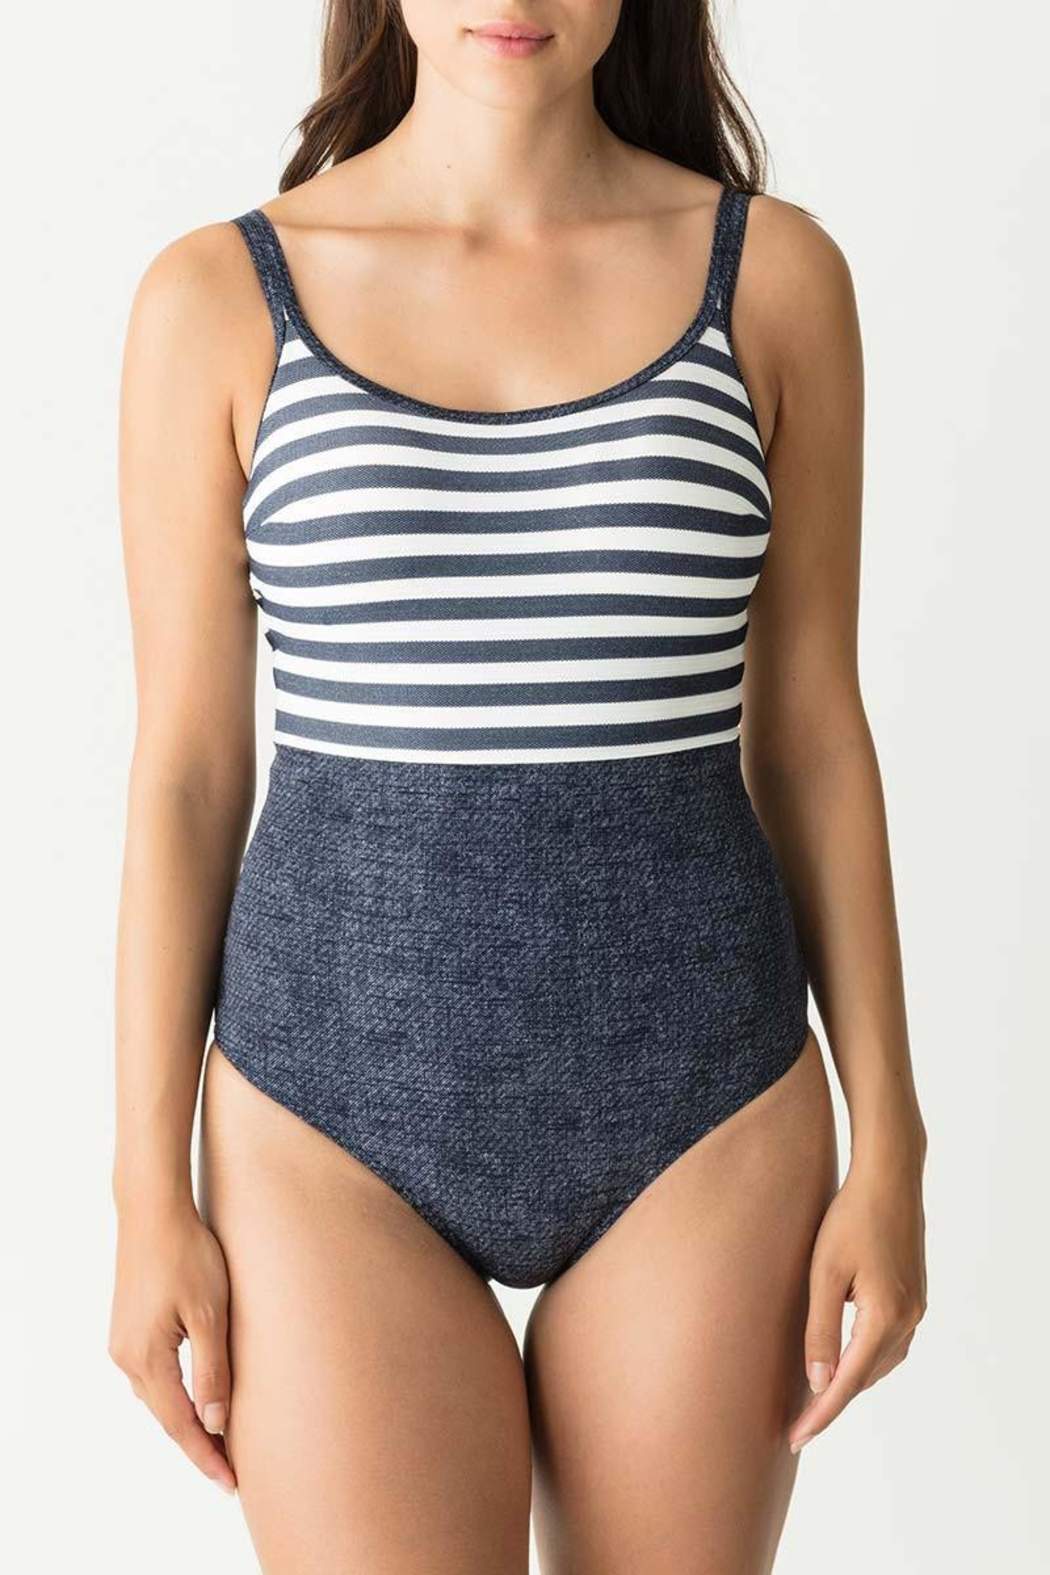 Prima Donna California One-Piece Swimsuit - Main Image